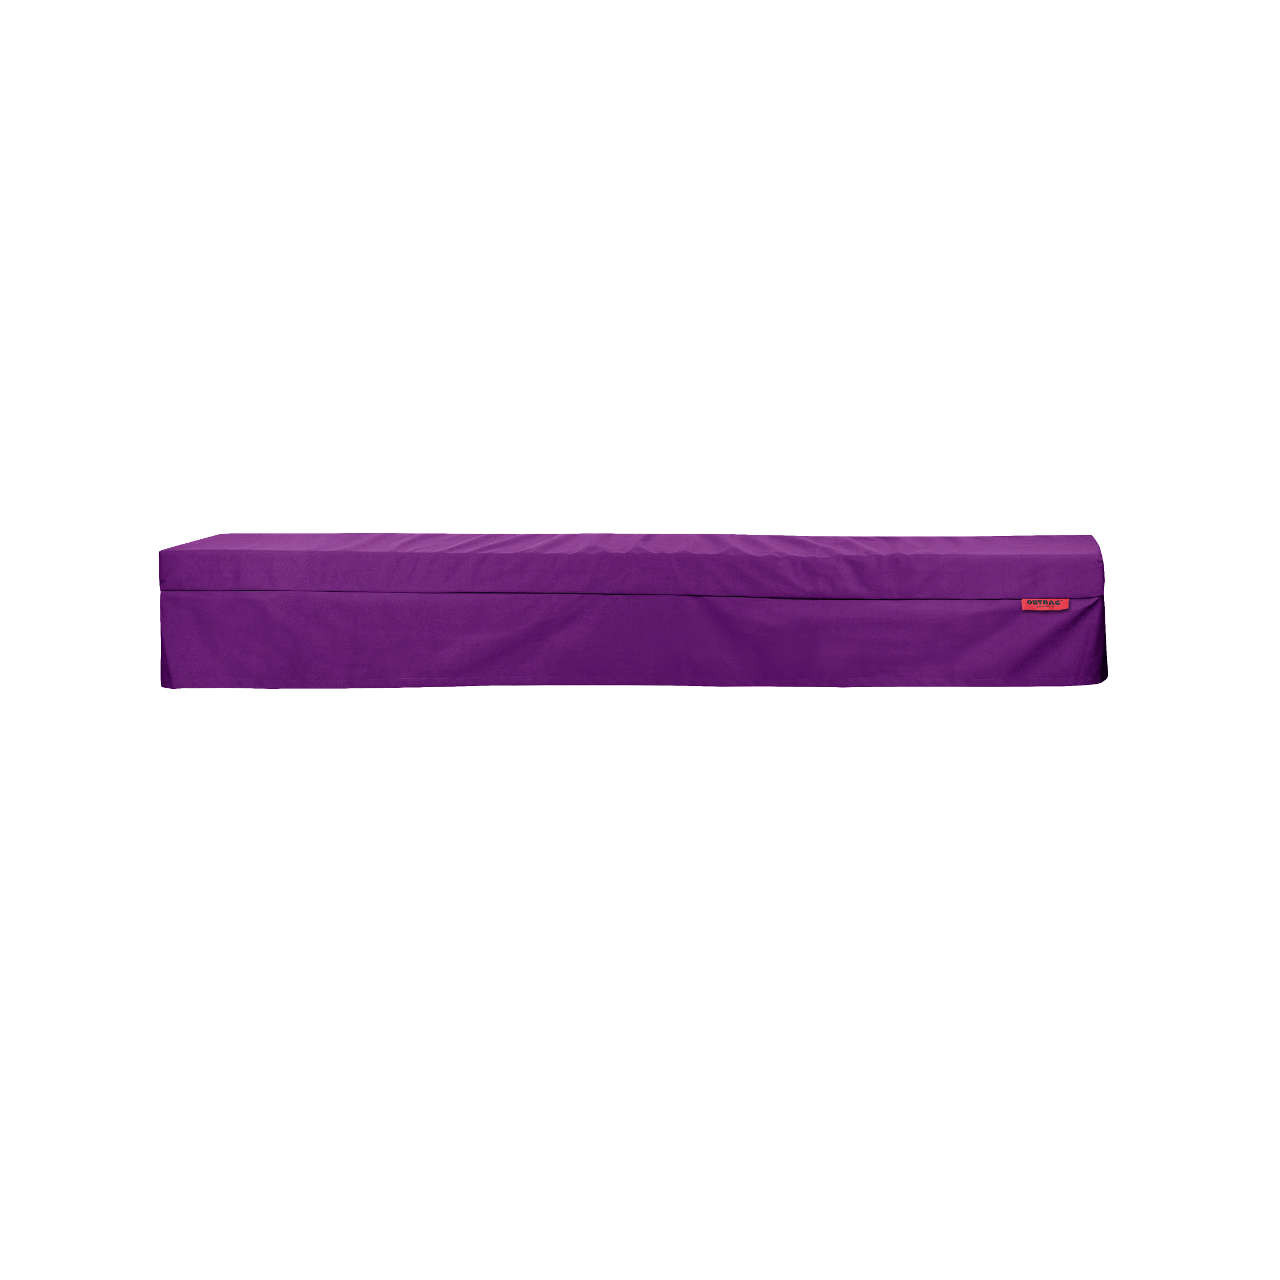 Outbag Sitzbankauflage Sitzbankpolster Bench plus purple